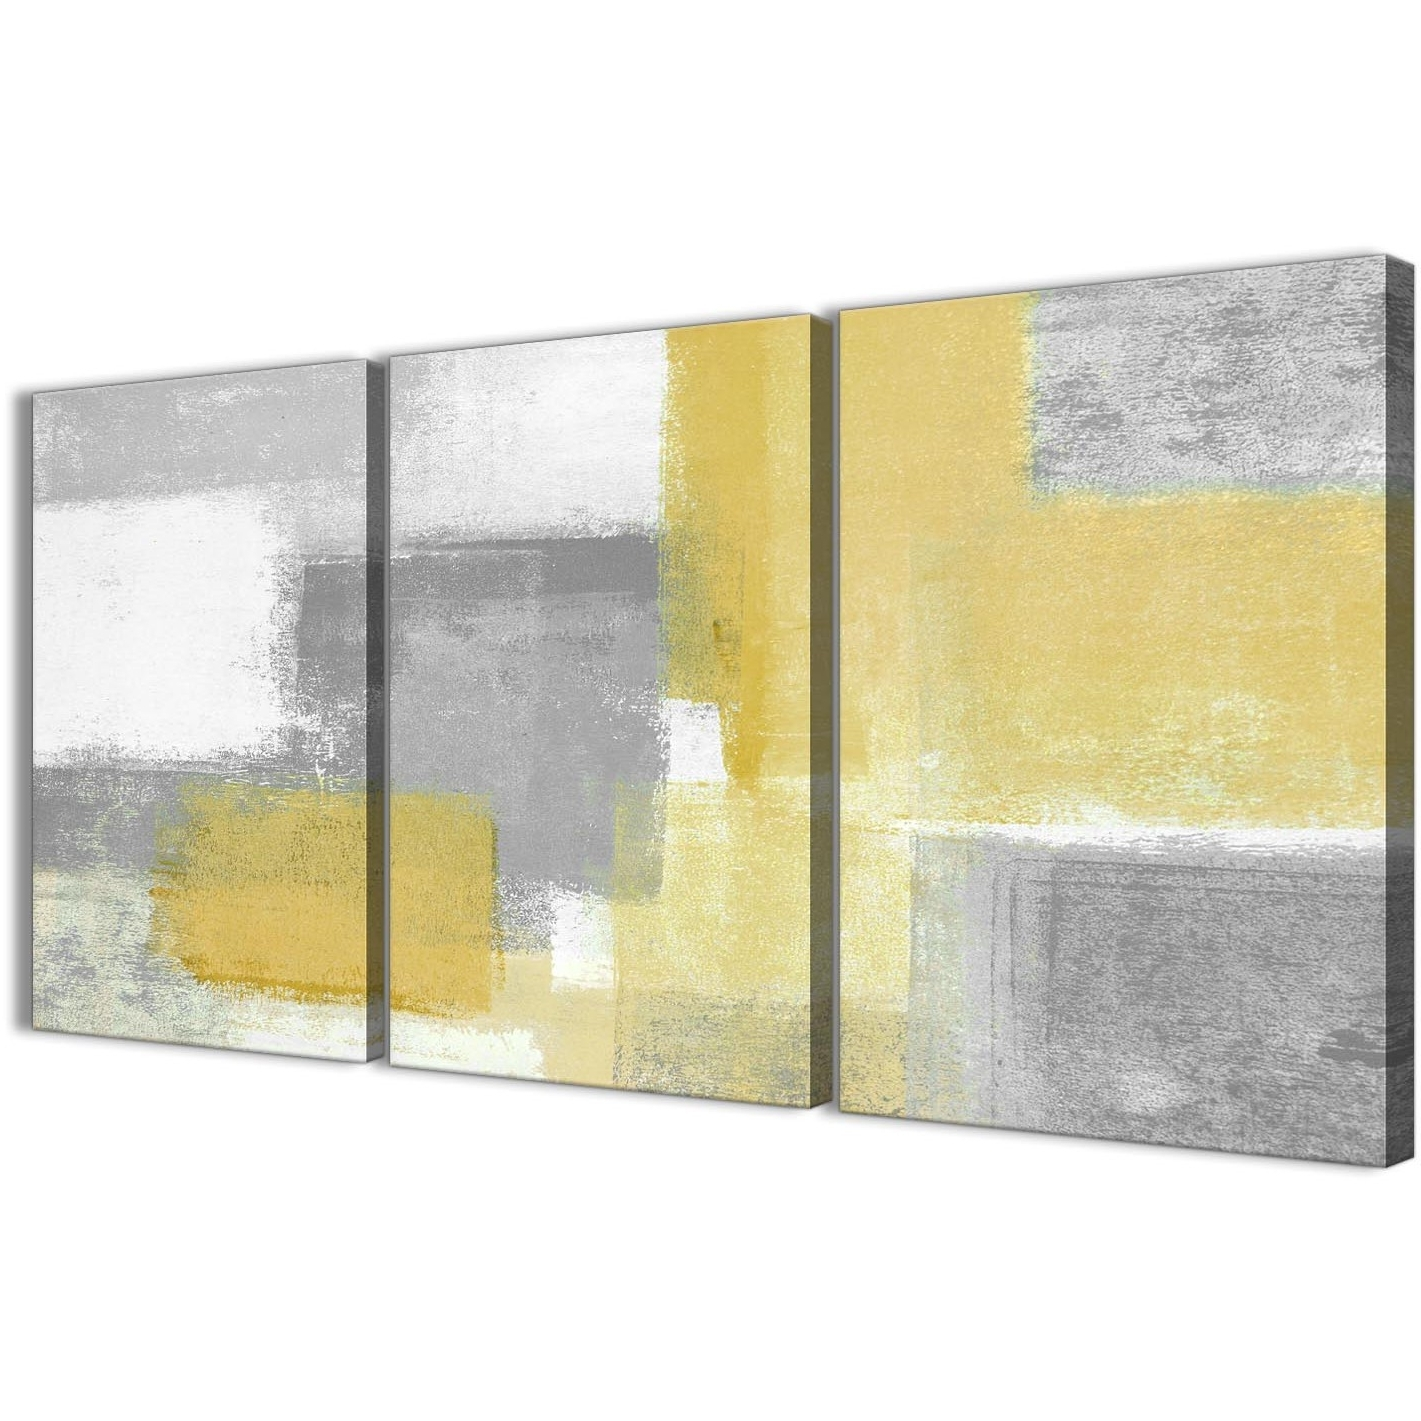 2017 3 Panel Mustard Yellow Grey Kitchen Canvas Wall Art Decor – Abstract Regarding Grey Wall Art (View 1 of 15)